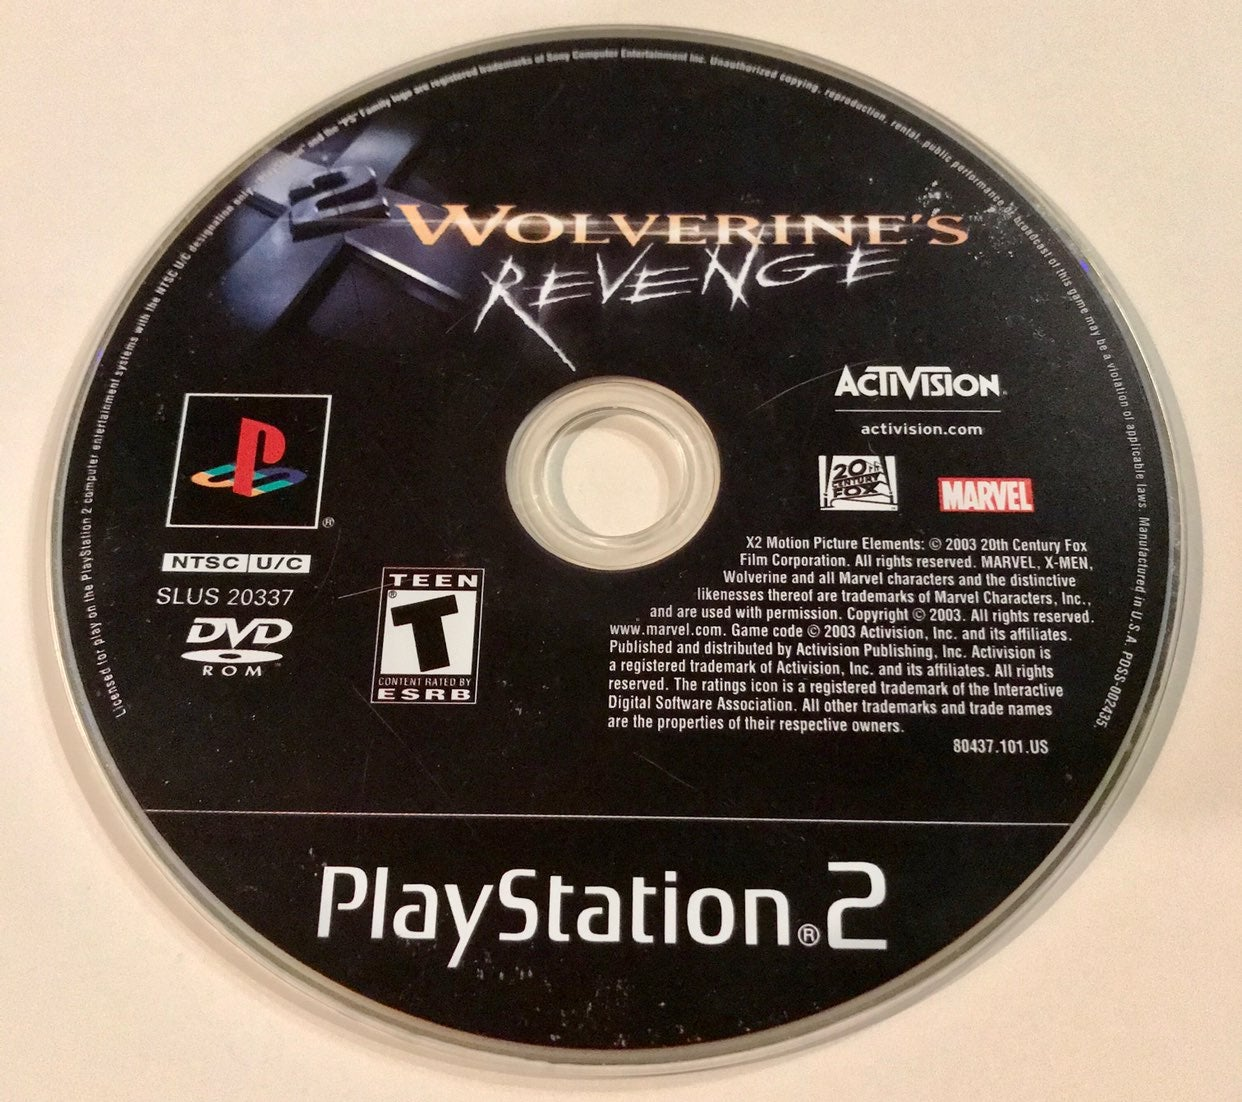 Wolverines Revenge Playstation 2